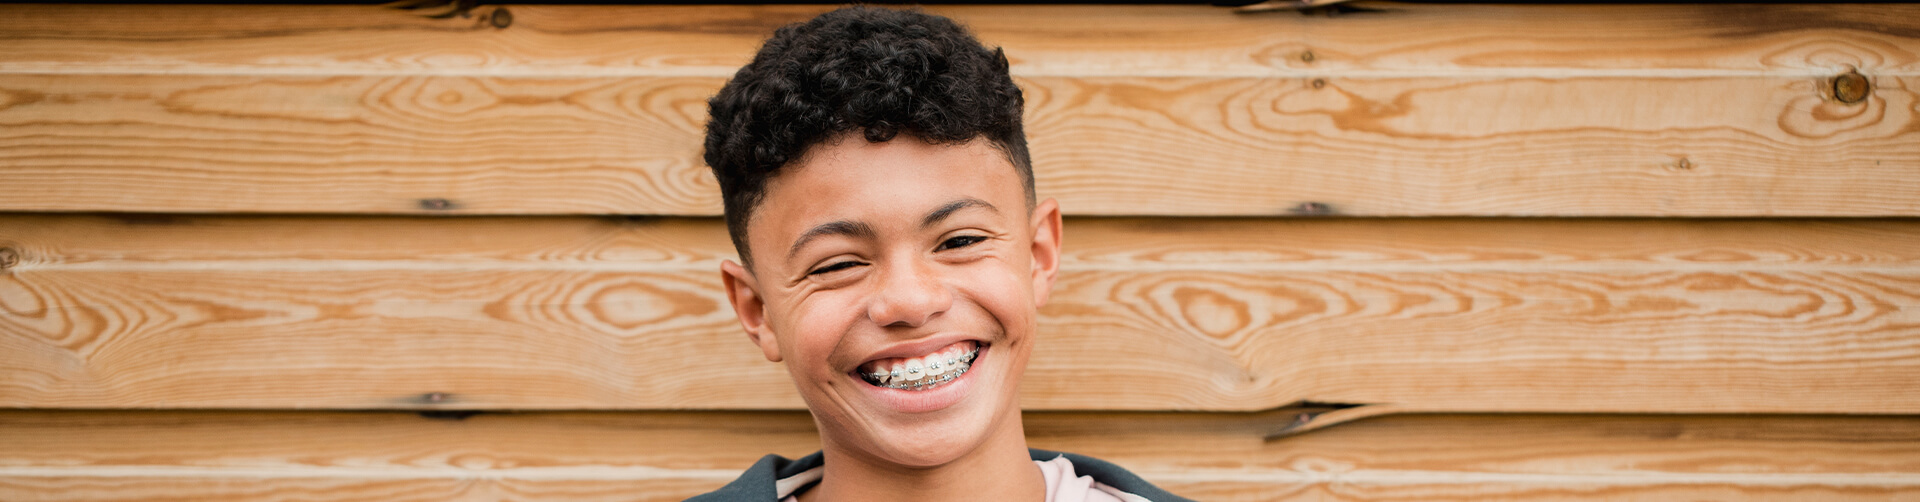 smiling young man with braces